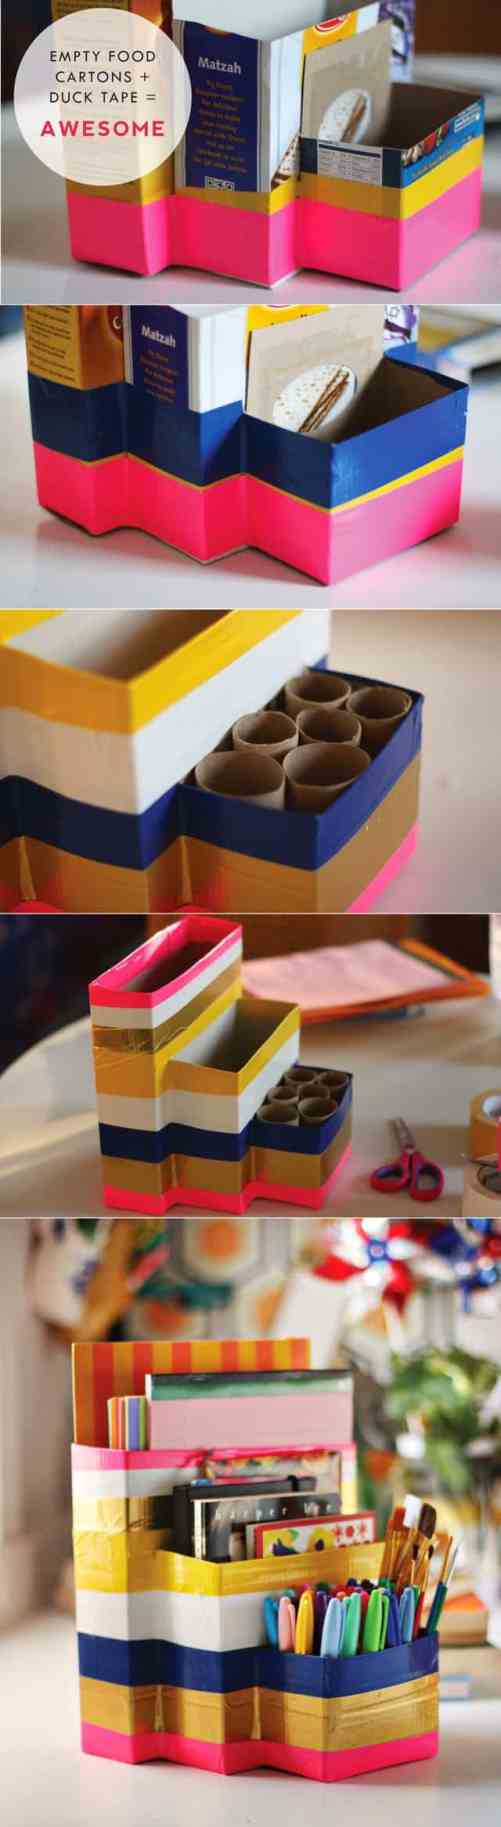 Awesome ways to recycle cereal boxes . A desk organizer from cardboard boxes and duck tape - neat!